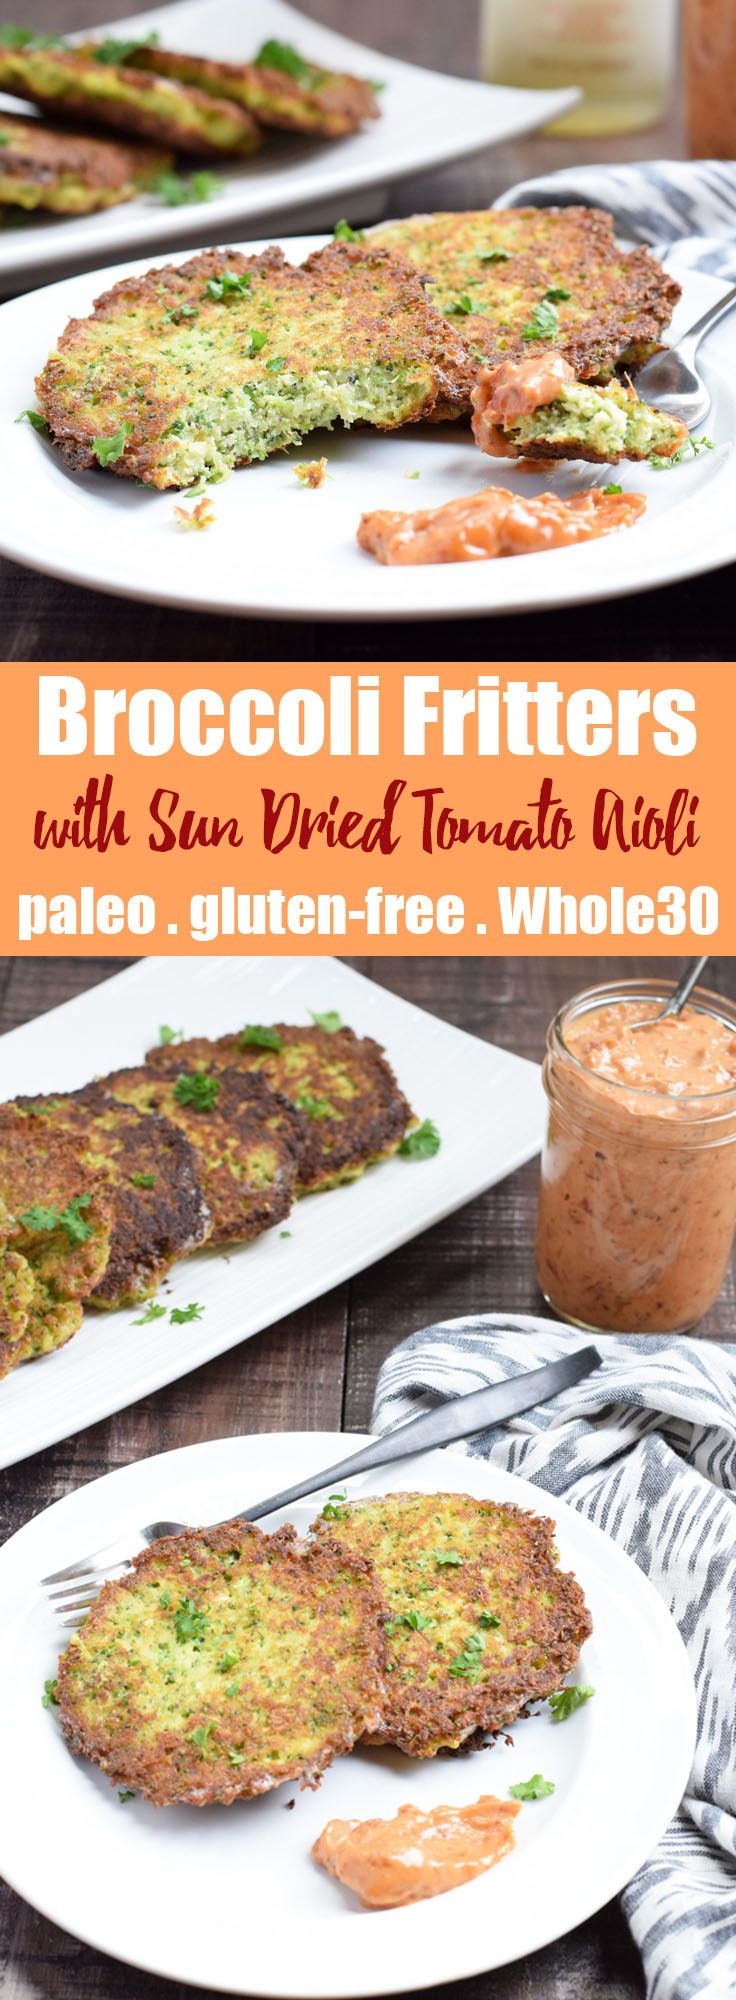 Broccoli Fritters with Sun Dried Tomato Aioli from Living Loving Paleo! | paleo, gluten-free, Whole30 friendly and 21dsd | These broccoli fritters are SO delicious, plus I'm showing you in a quick video just how easy they are to make!